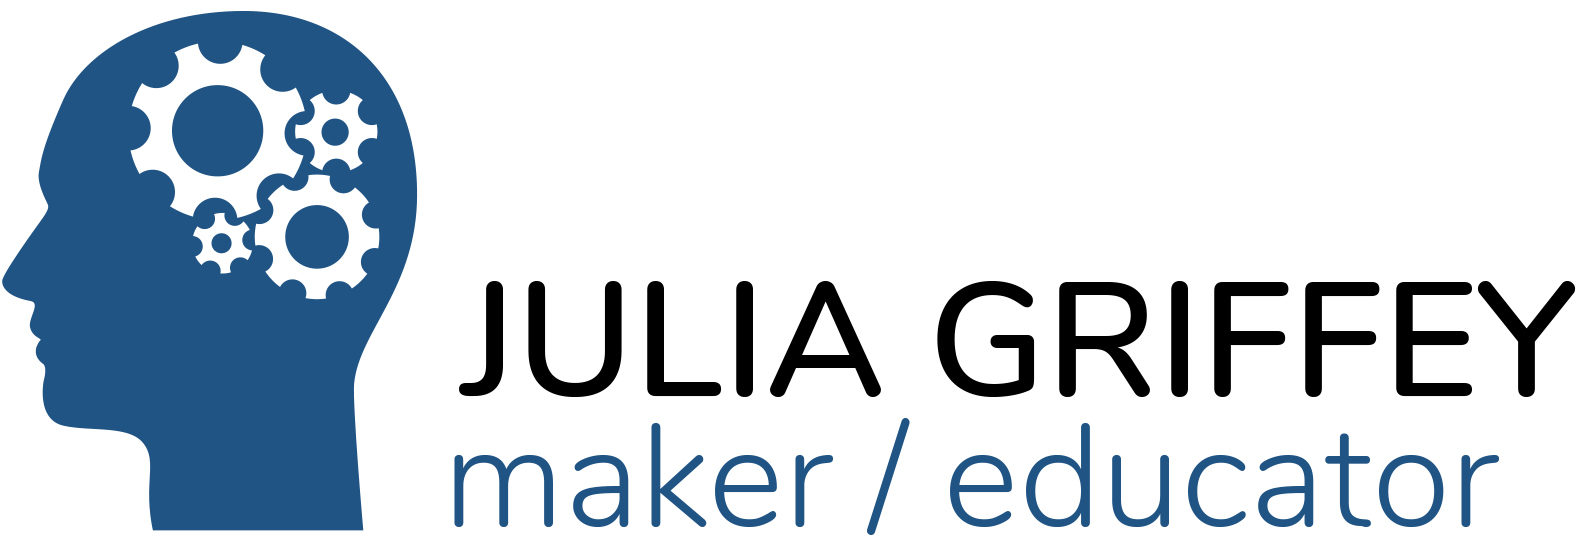 Julia Griffey: Maker / Educator